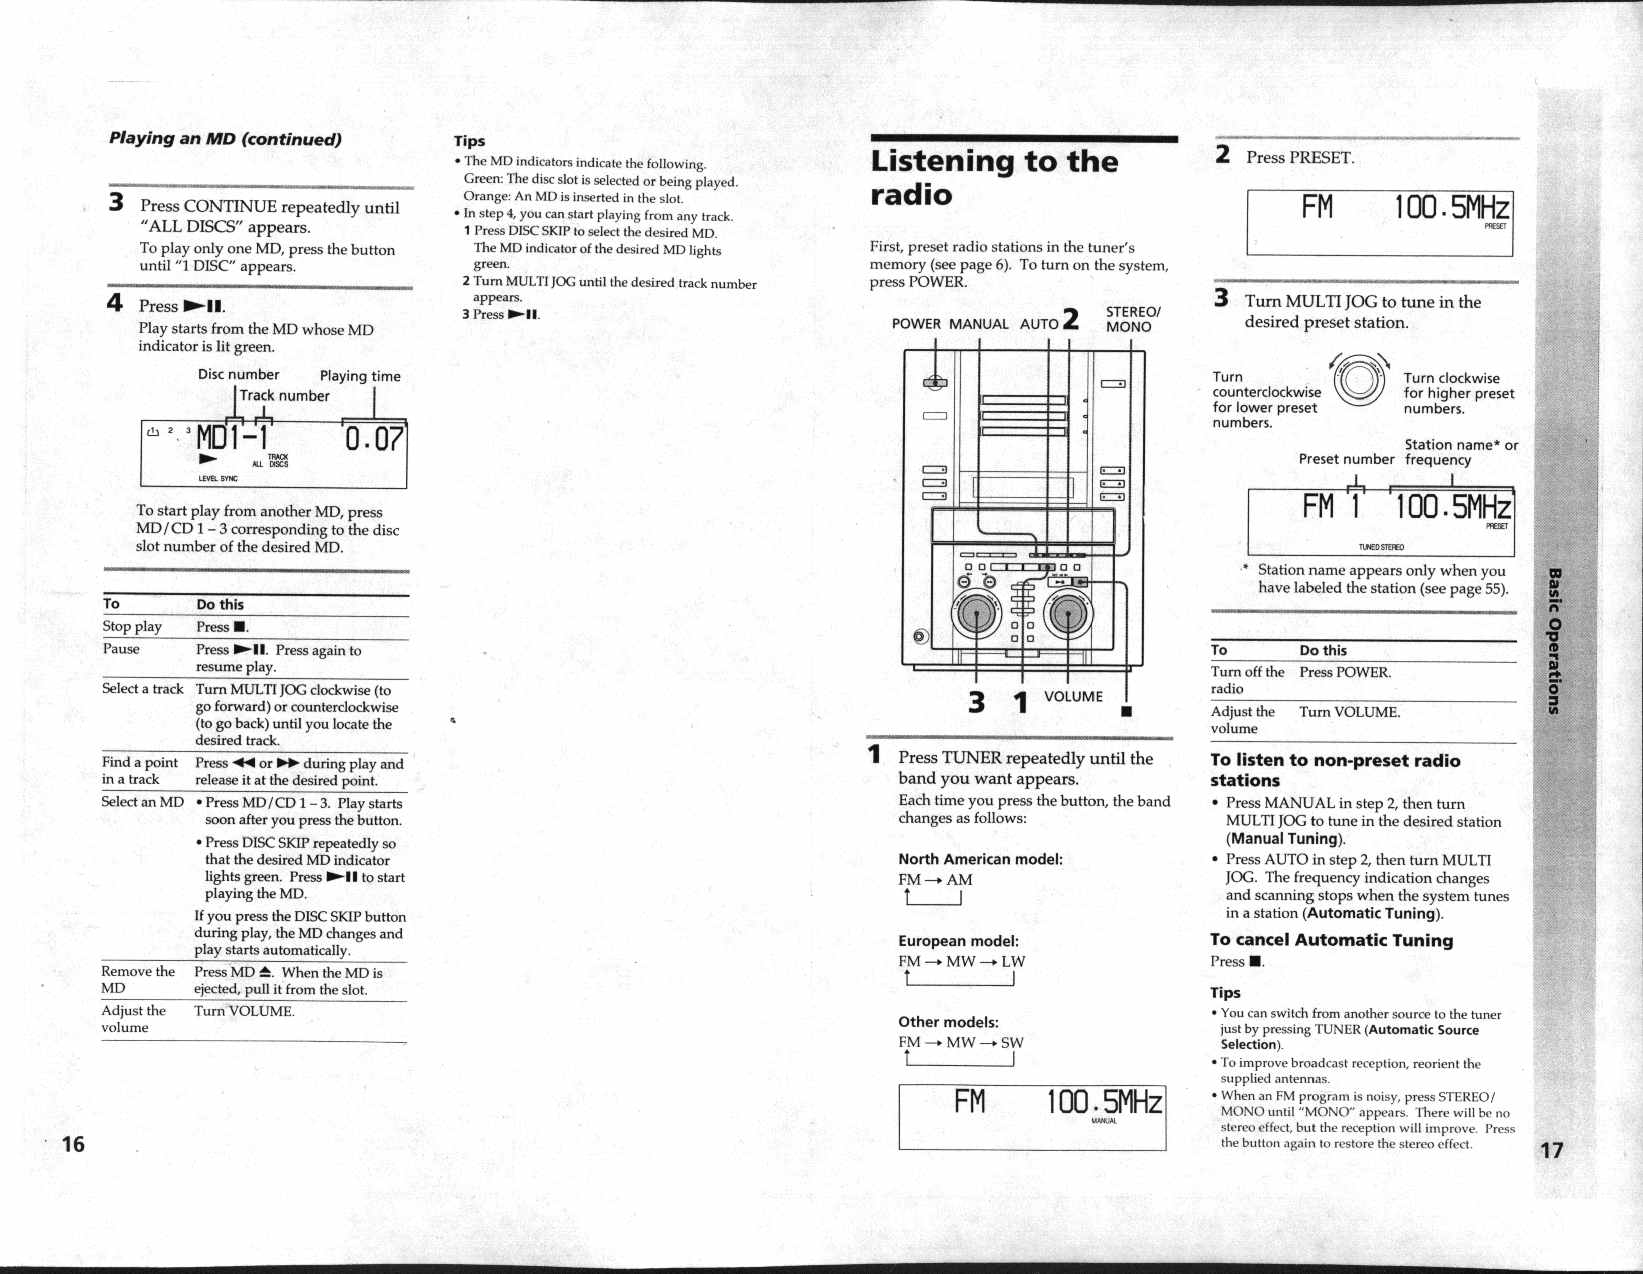 Sony DHC-MD515 manual